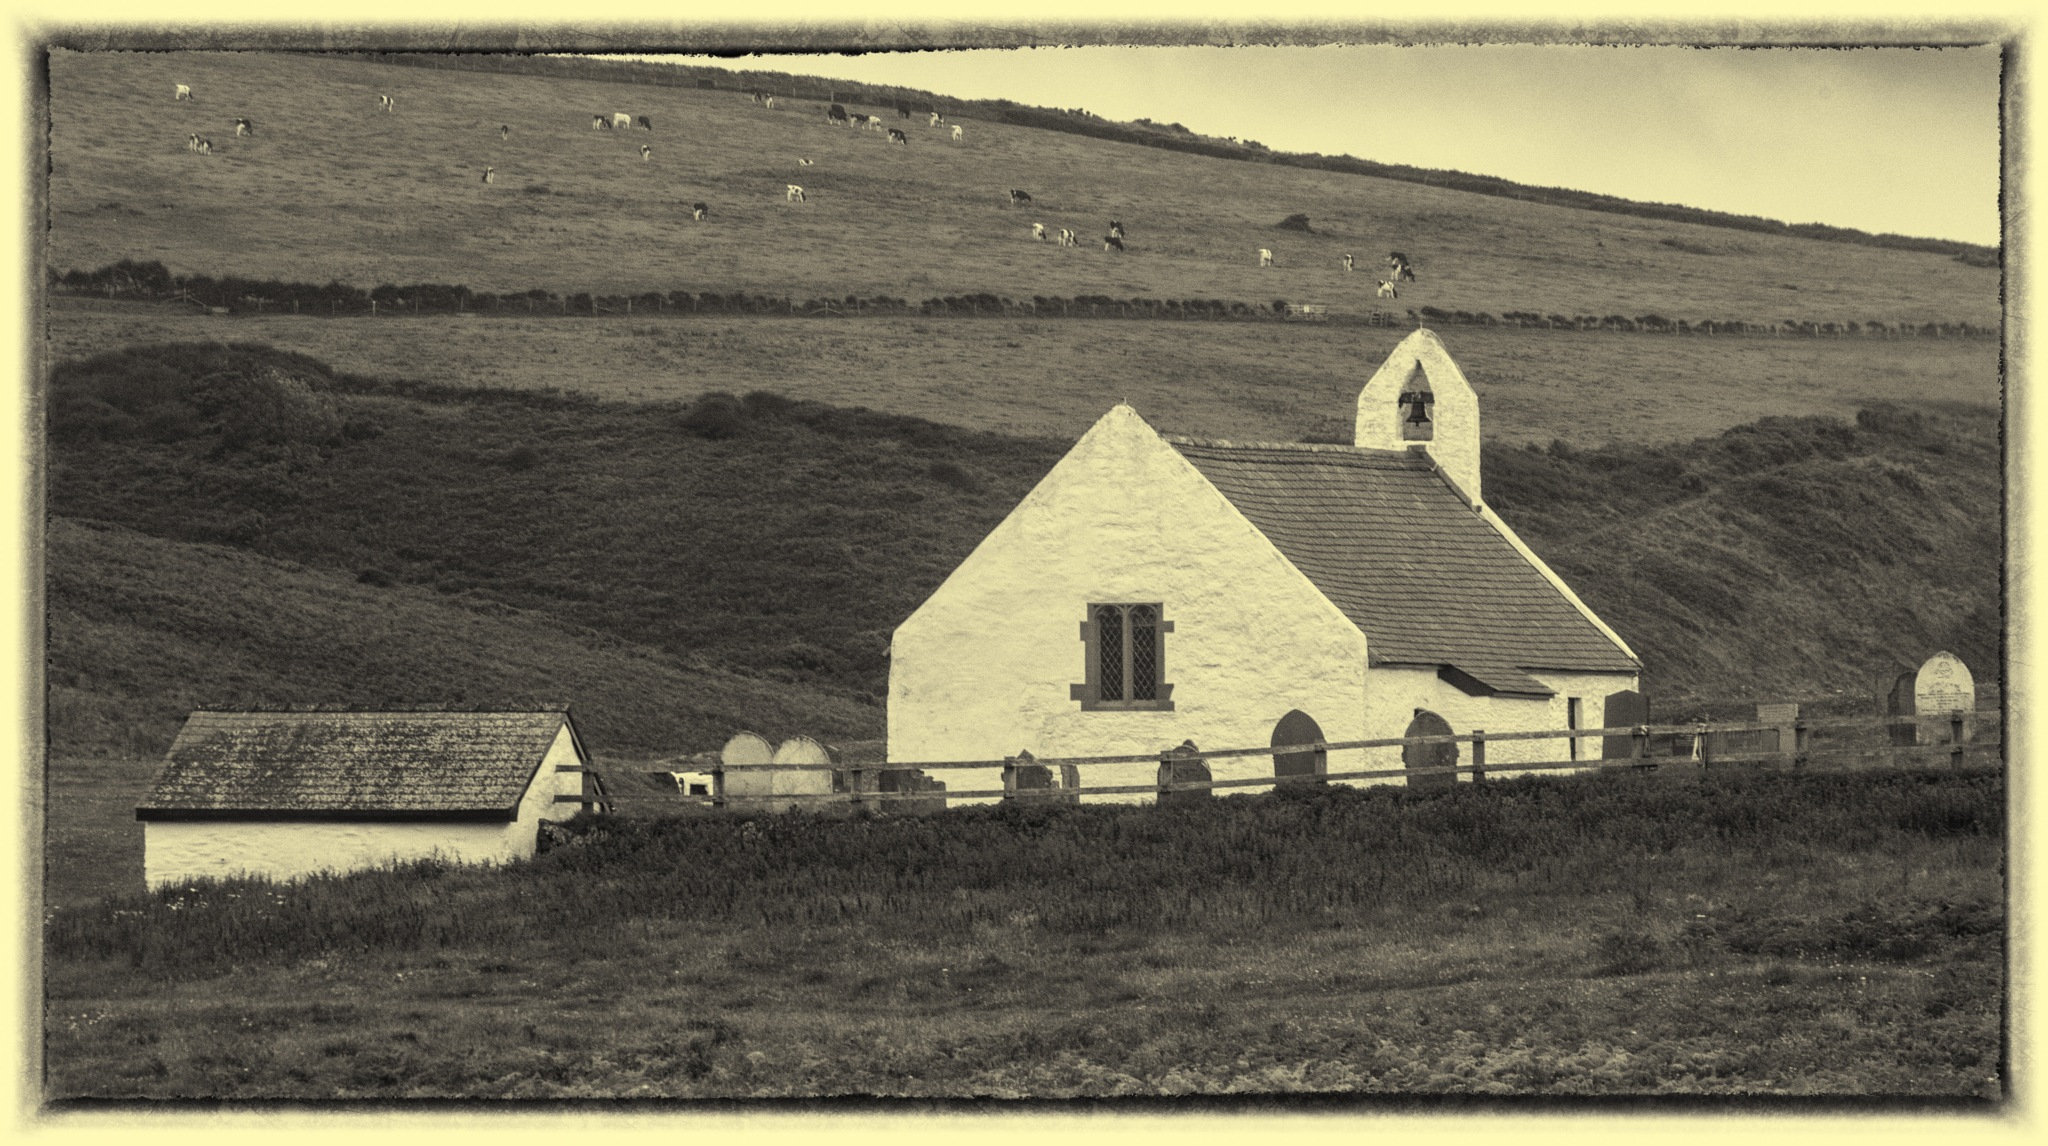 Mwnt Church by rfoulkes